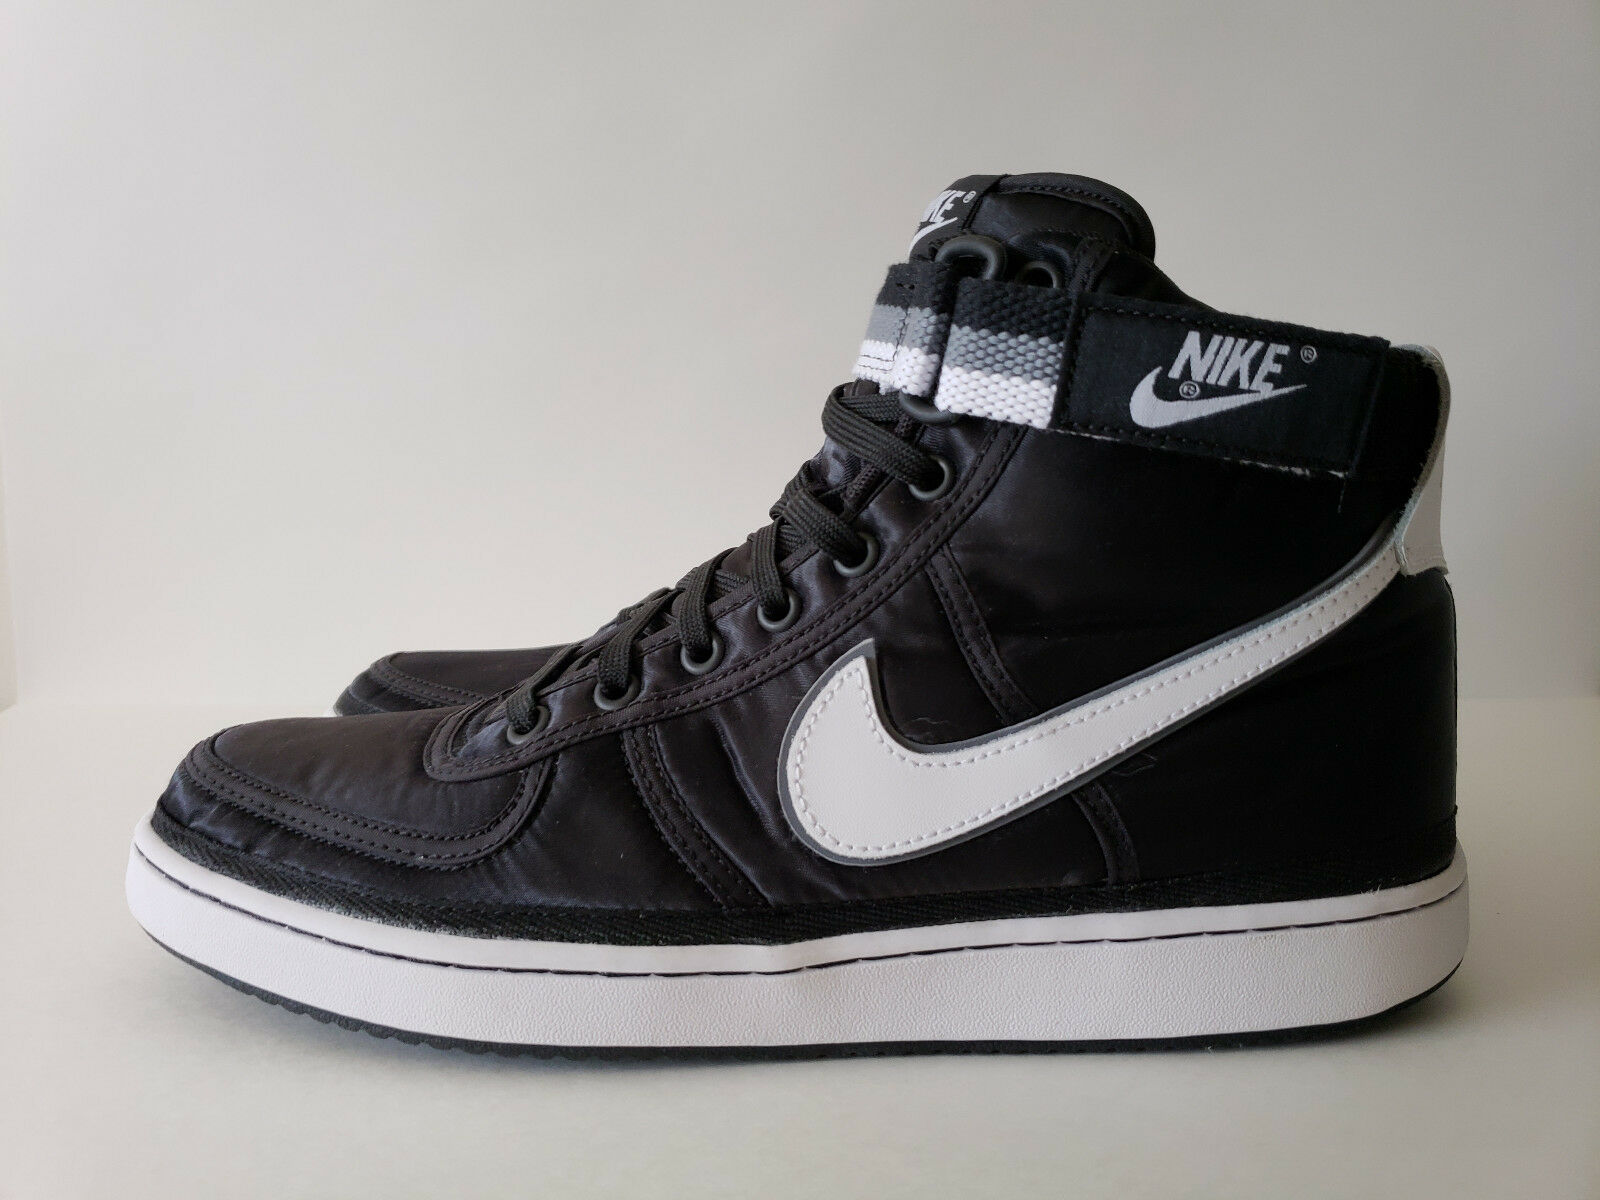 Nike Vandal High Supreme - Size 10.5 - 318330-001 Satin QS White Grey Black Hi